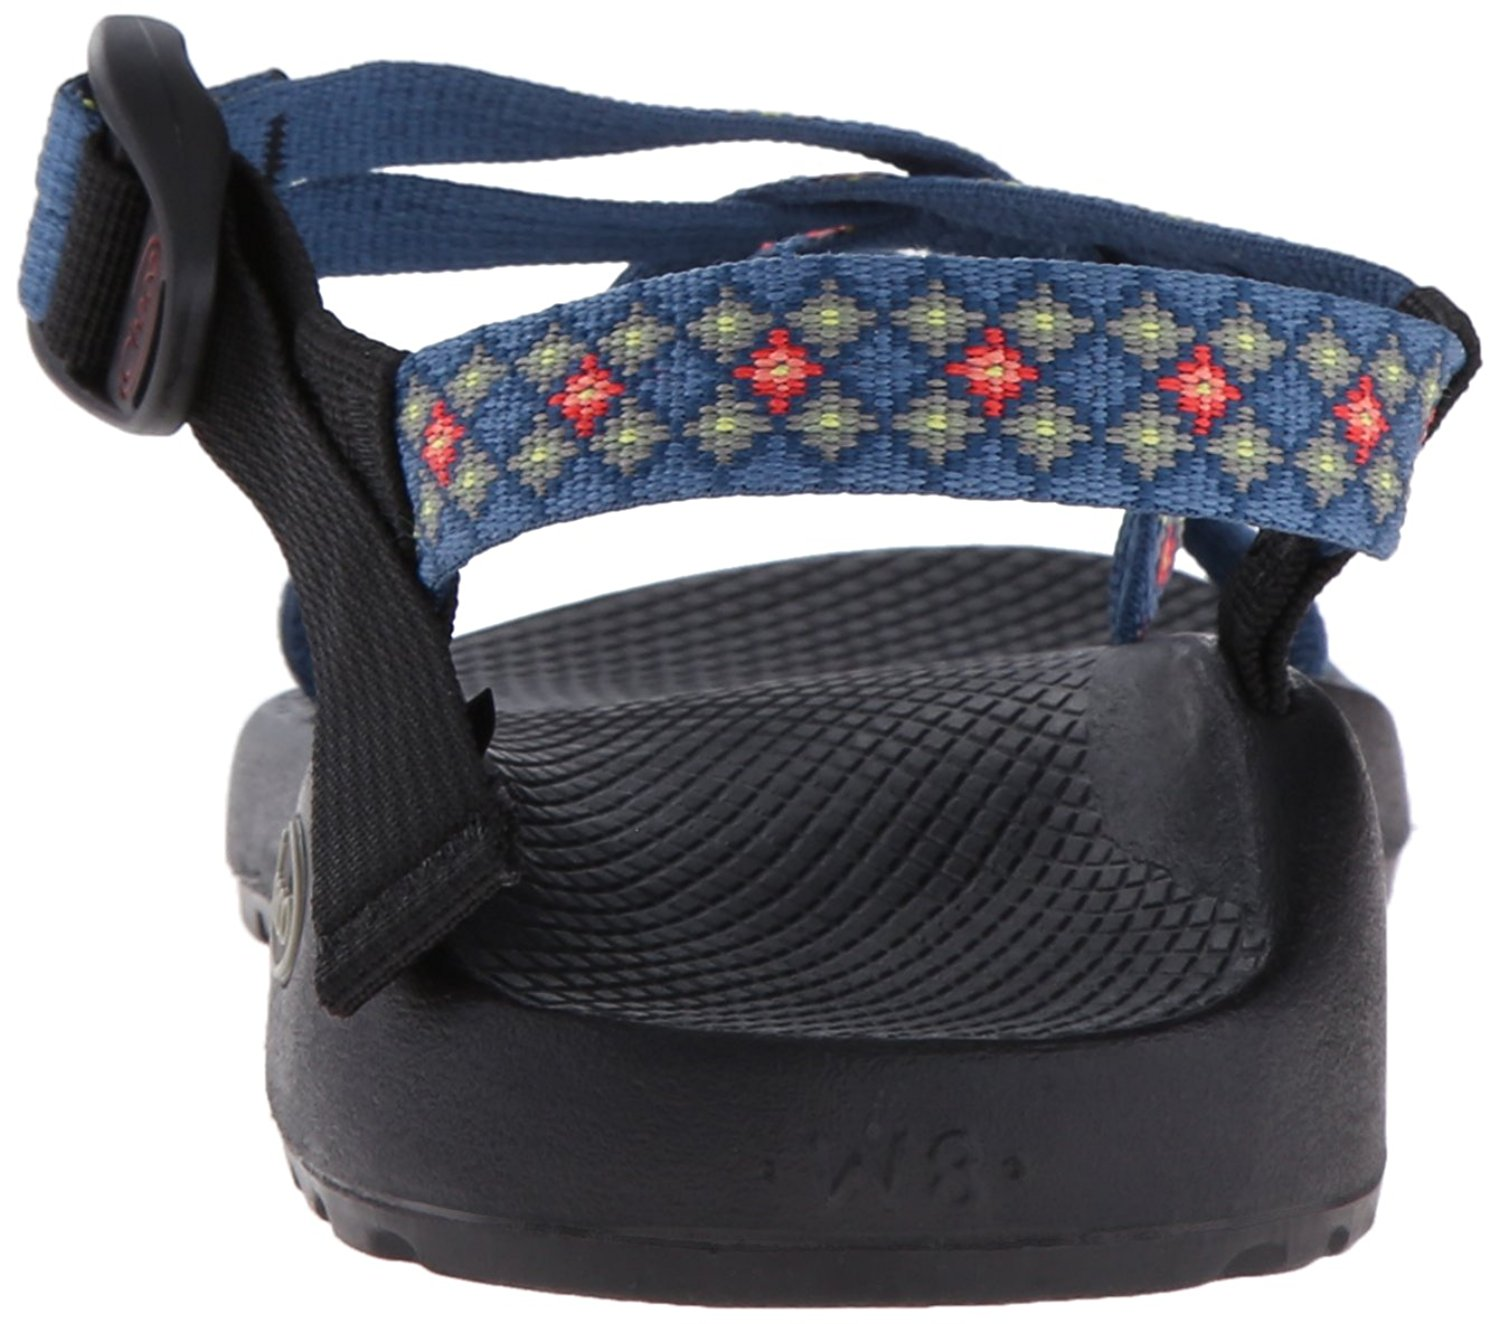 a3274e9c7ad1 Chaco - Chaco Women s Zx1 Classic Athletic Sandal